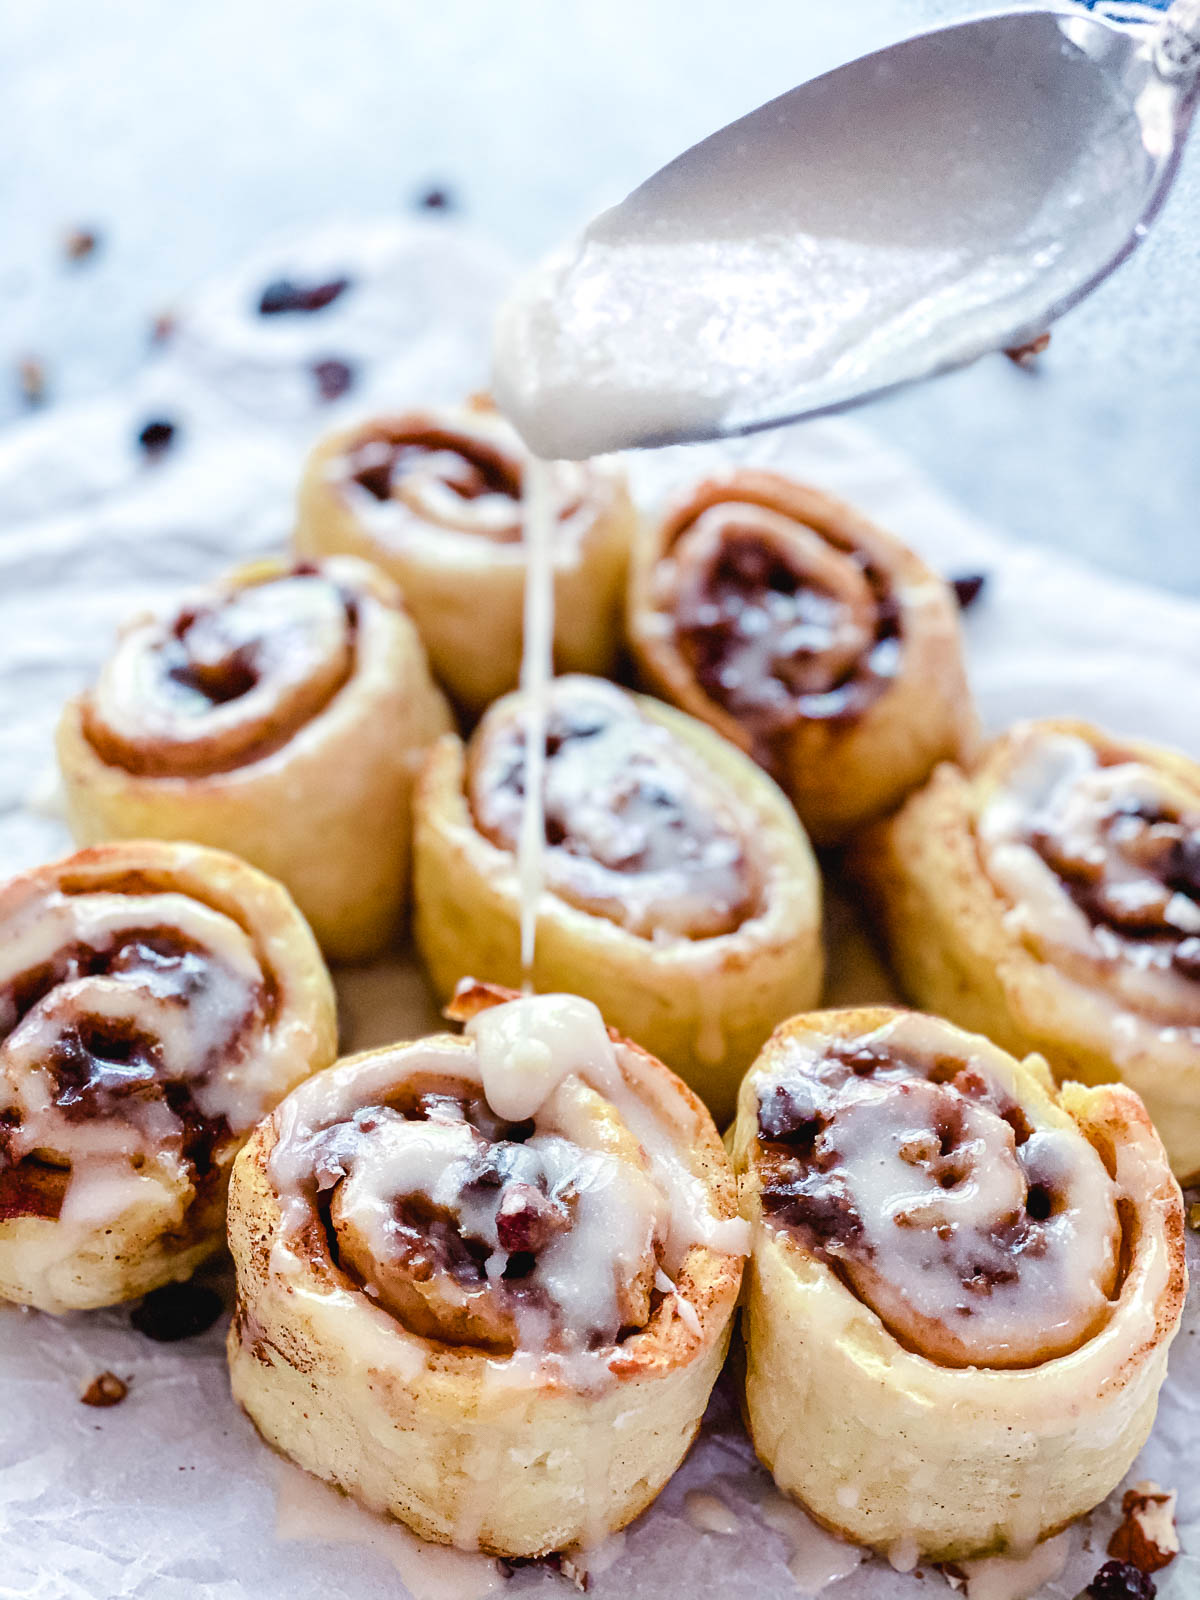 Cinnamon rolls with glaze being drizzled on top.